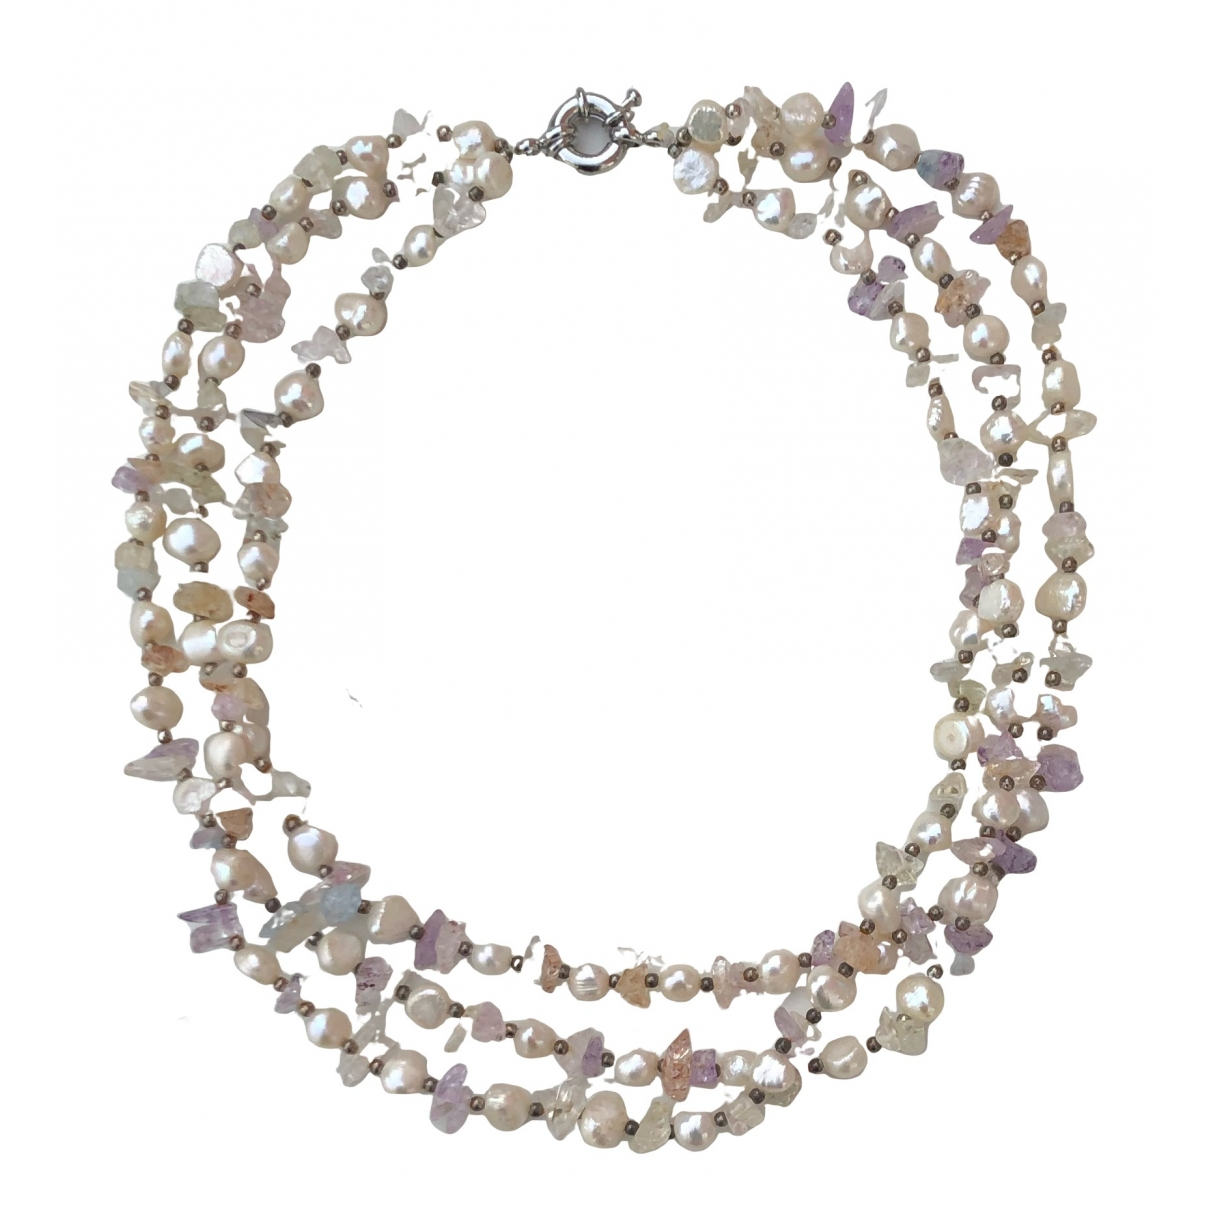 Non Signe / Unsigned Amethyste Kette in Perle